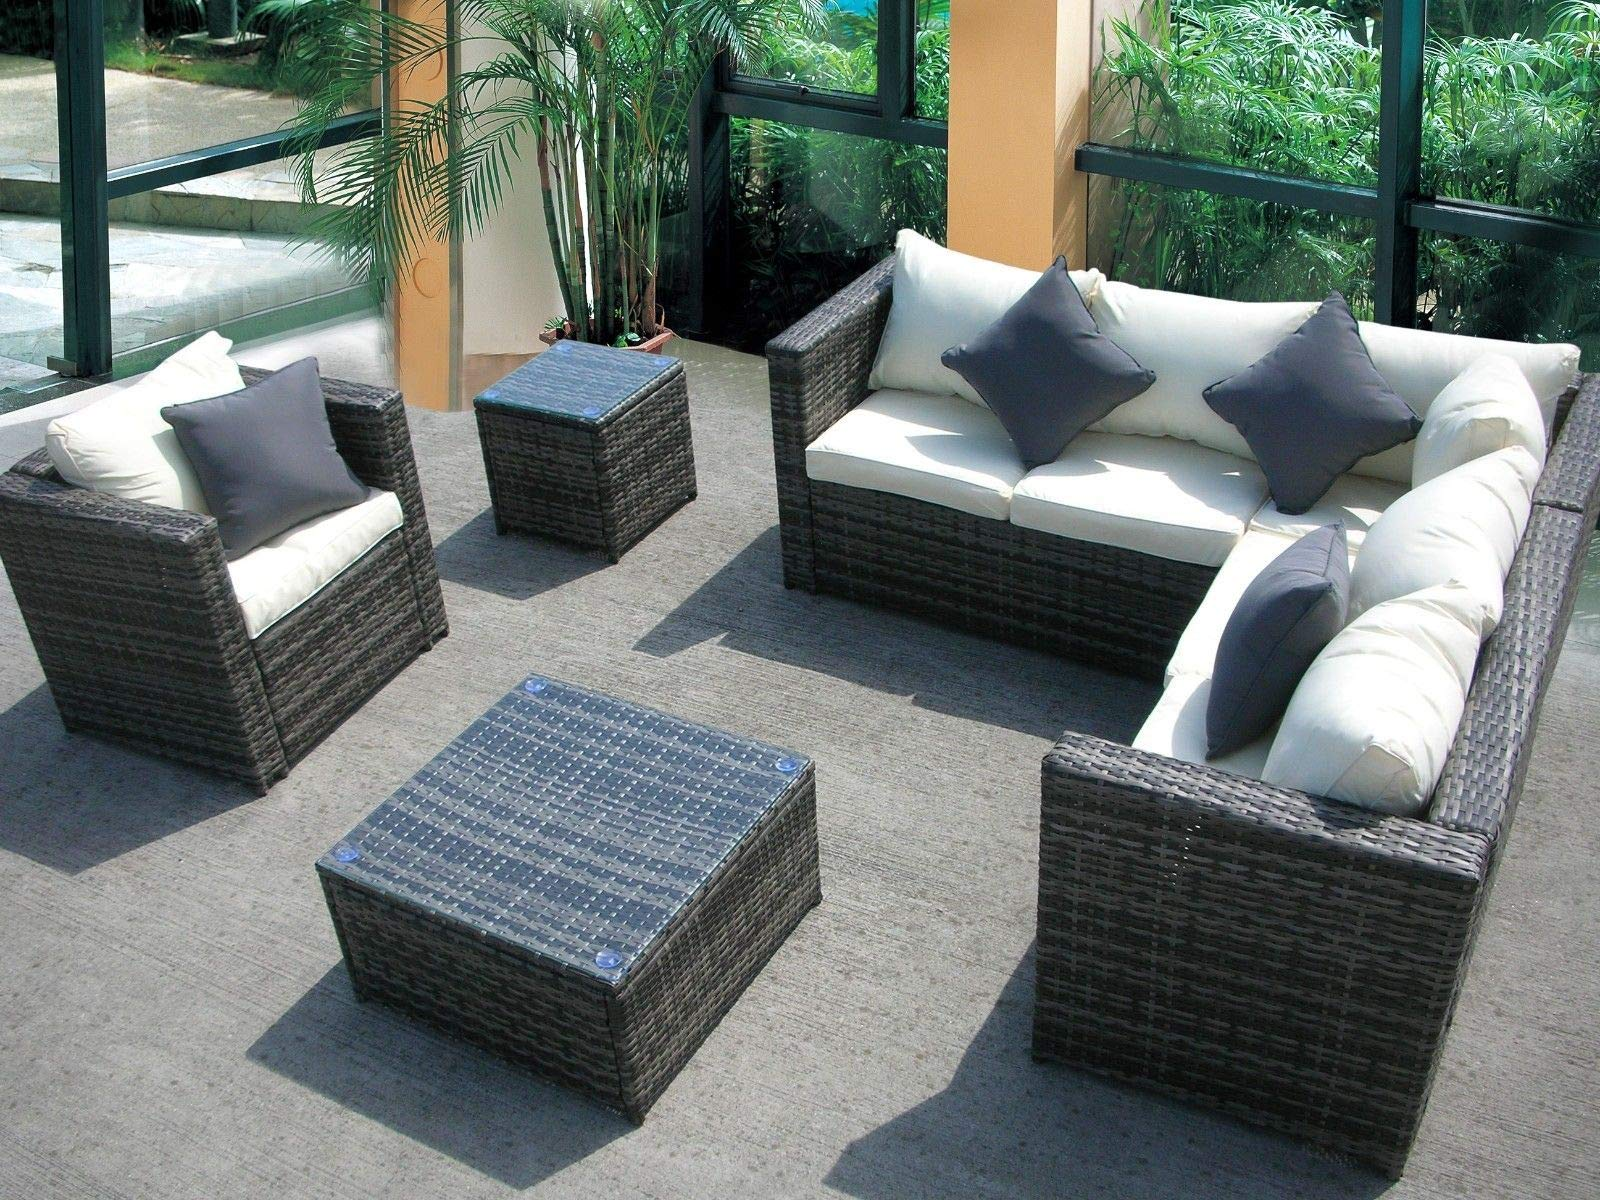 Better Homes And Gardens Replacement Cushions Azalea Ridge, Uk Leisure World New Rattan Wicker Conse Buy Online In United Arab Emirates At Desertcart